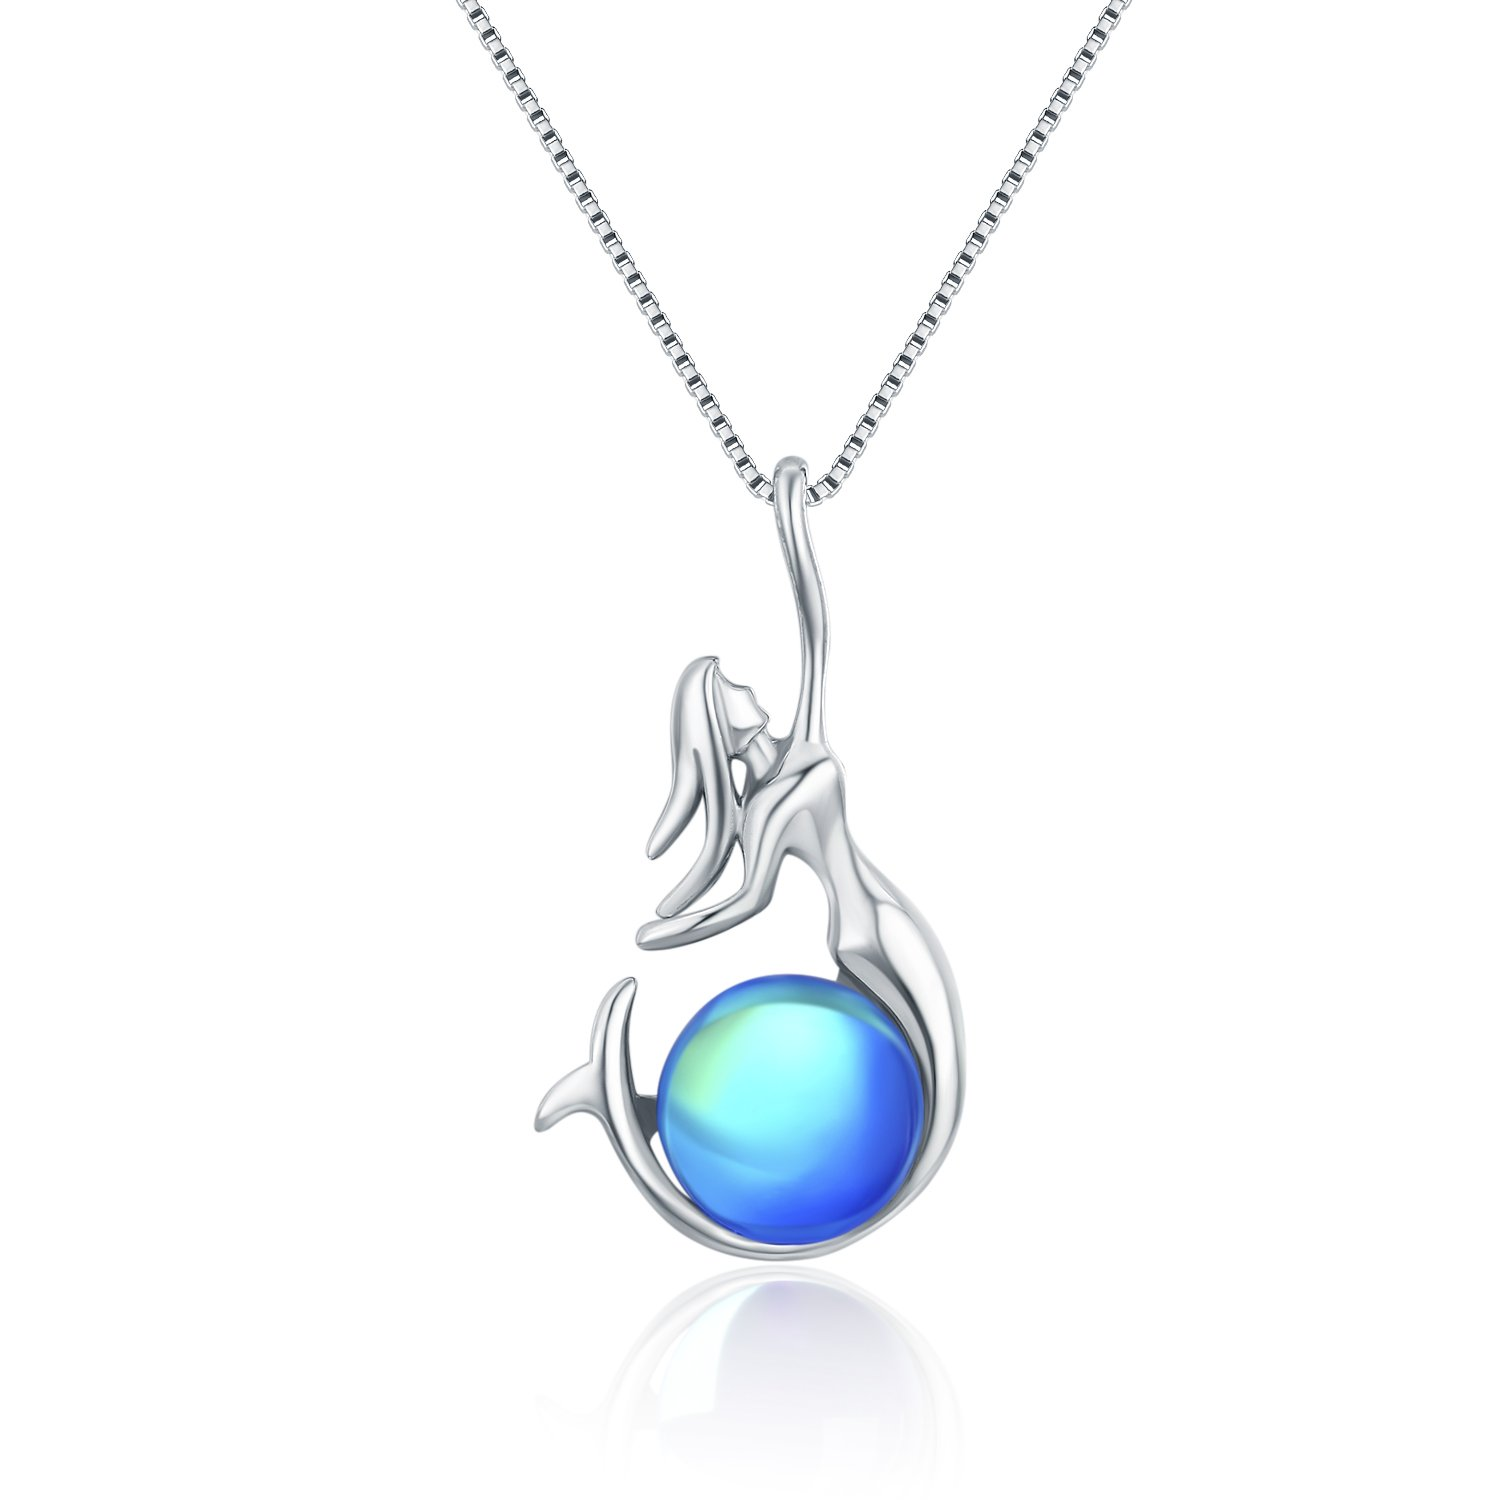 Wristchie Womens Fashion Jewelry 925 Sterling Silver Freshwater Cultured Pearl Mermaid Pendant Necklace 18+2'' (Blue)